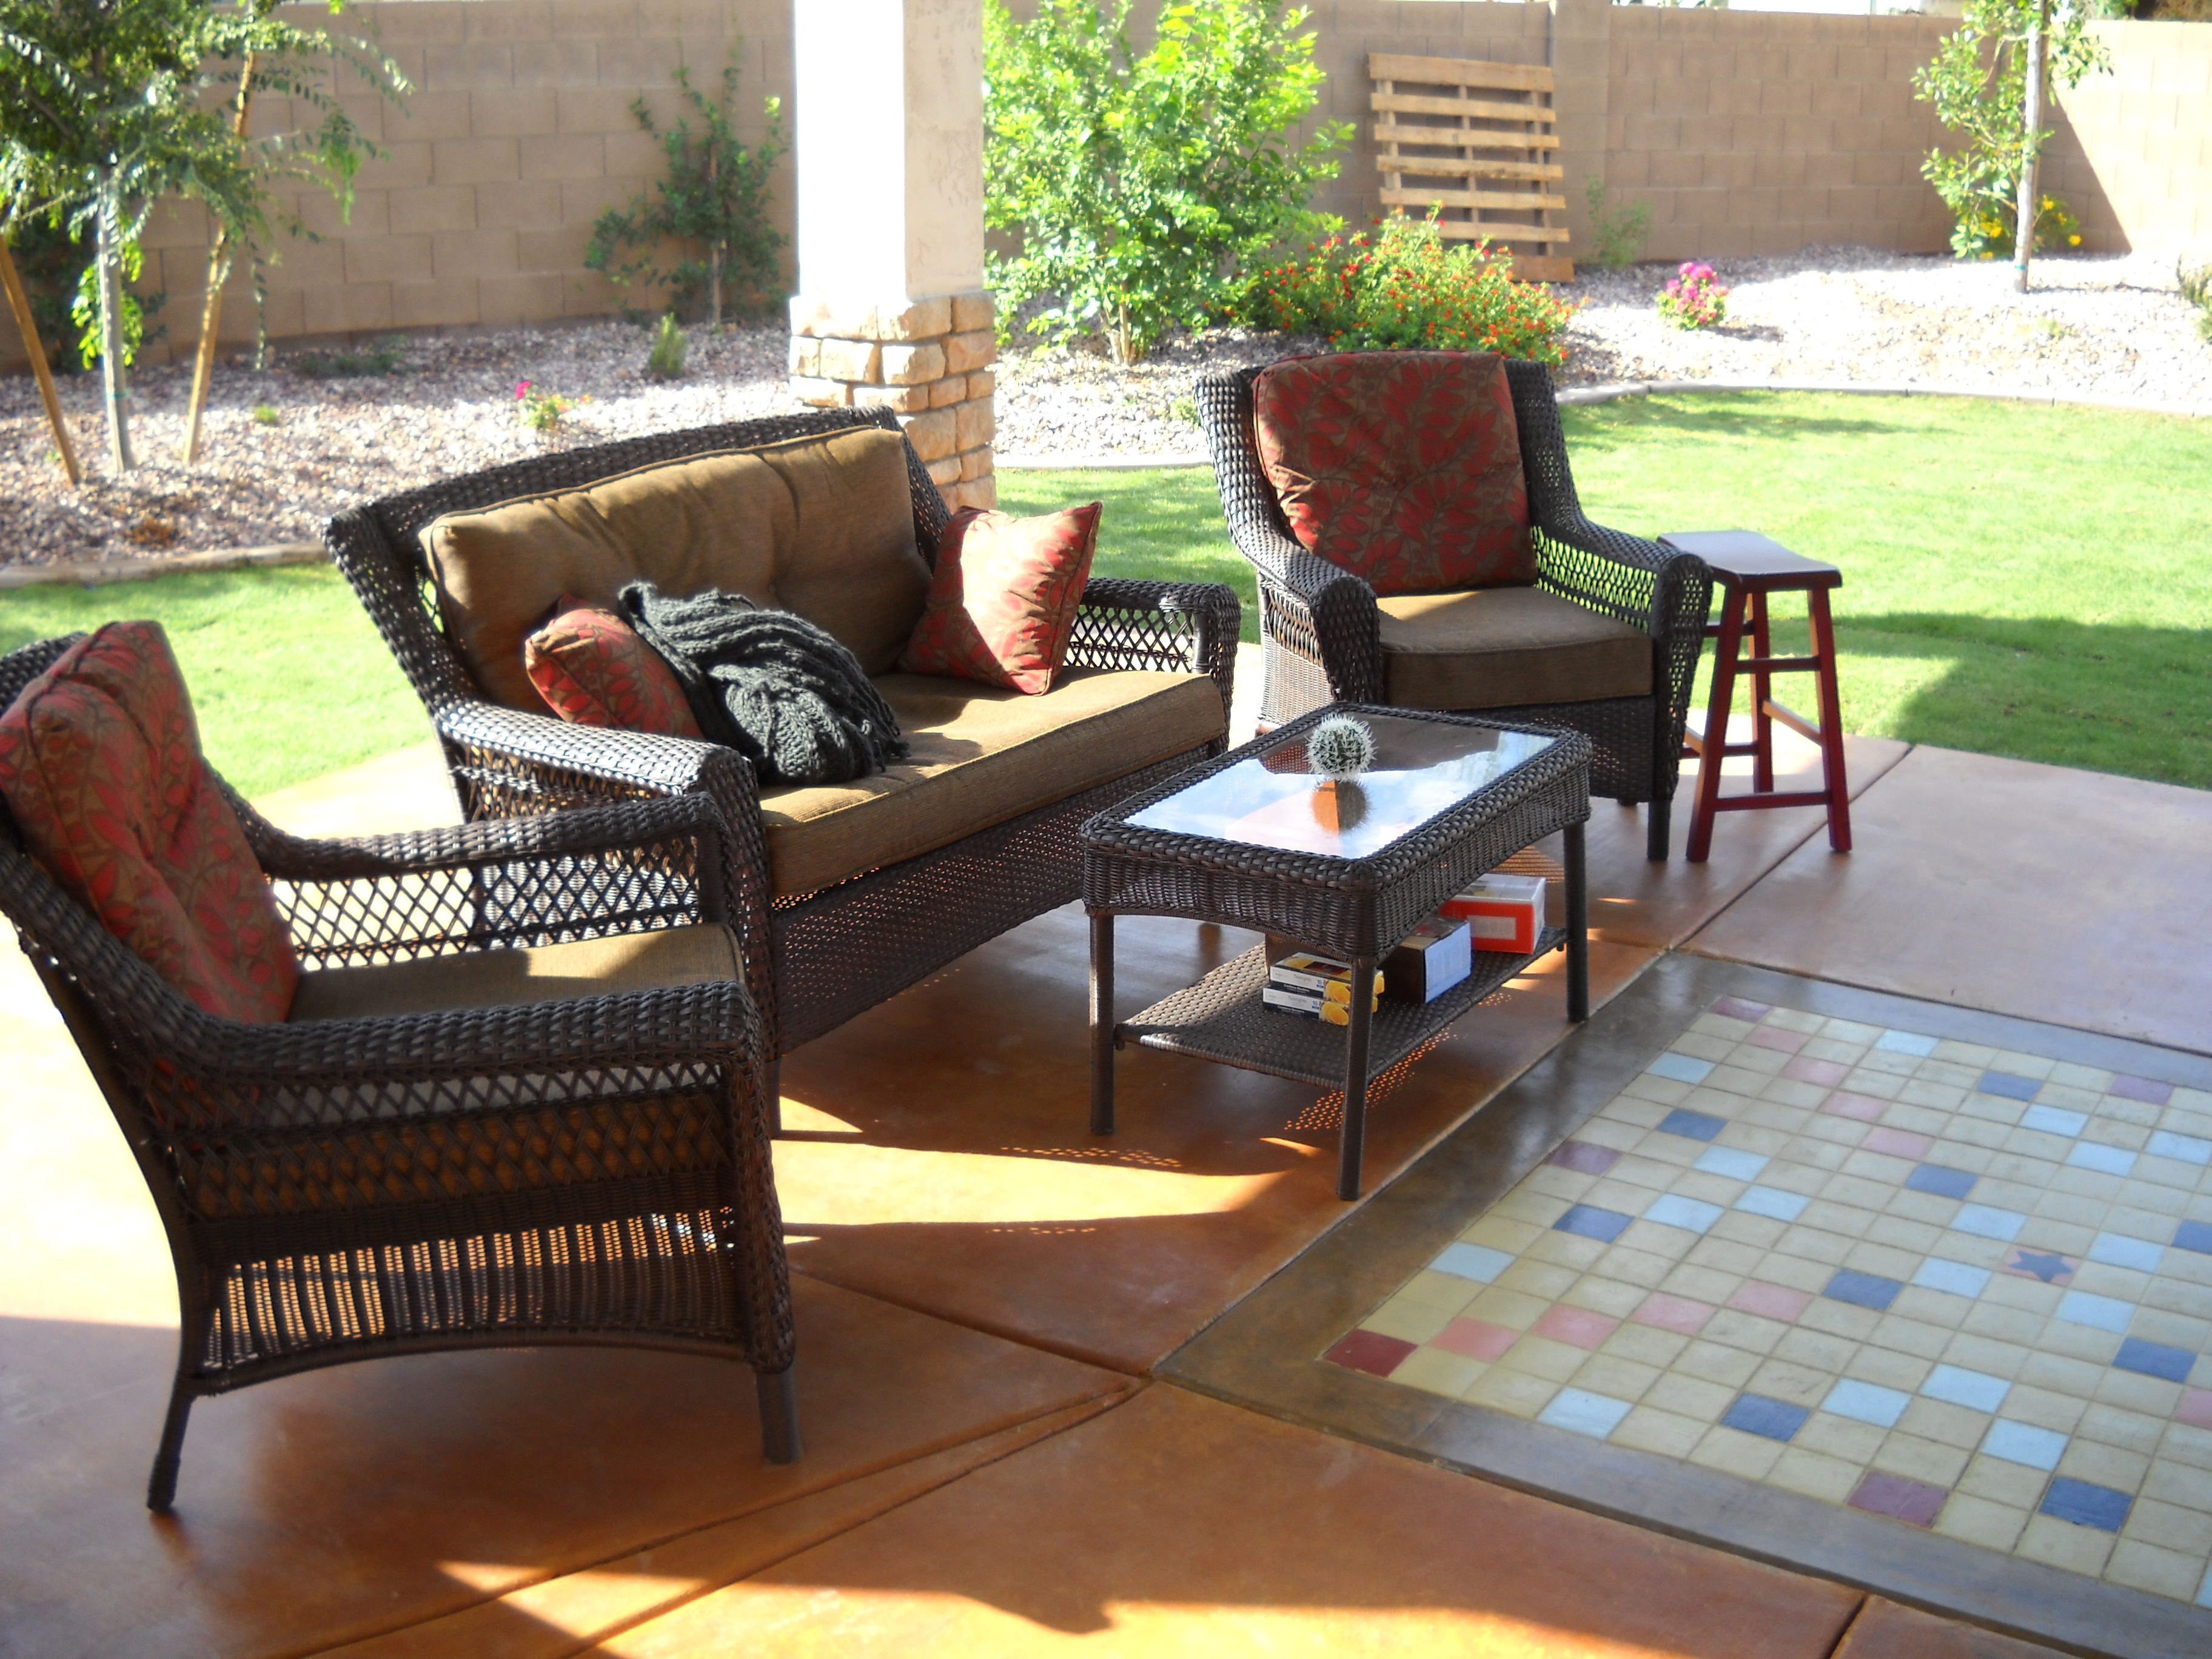 Backyard Scrabble Tiles : The final step was acid staining the patio a warm buckskin color